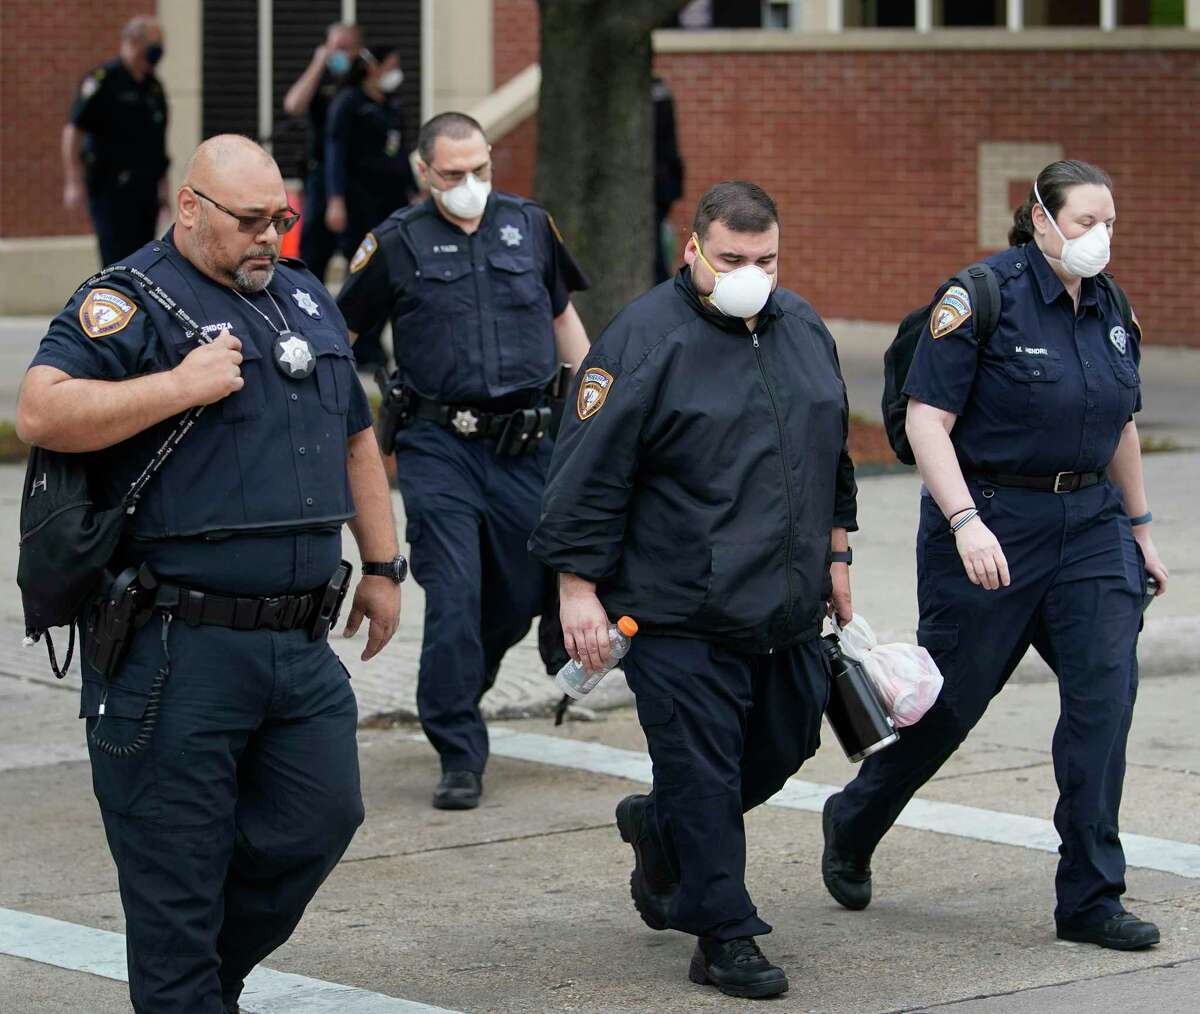 Harris County Sheriff's employees are shown walking near the Harris County Jail at the intersection of Baker St. and N. San Jacinto St., Monday, April 6, 2020, in Houston. Amid the coronavirus pandemic, a number of Harris County Sheriff's deputies, detention officers and staff have tested positive for COVID-19.